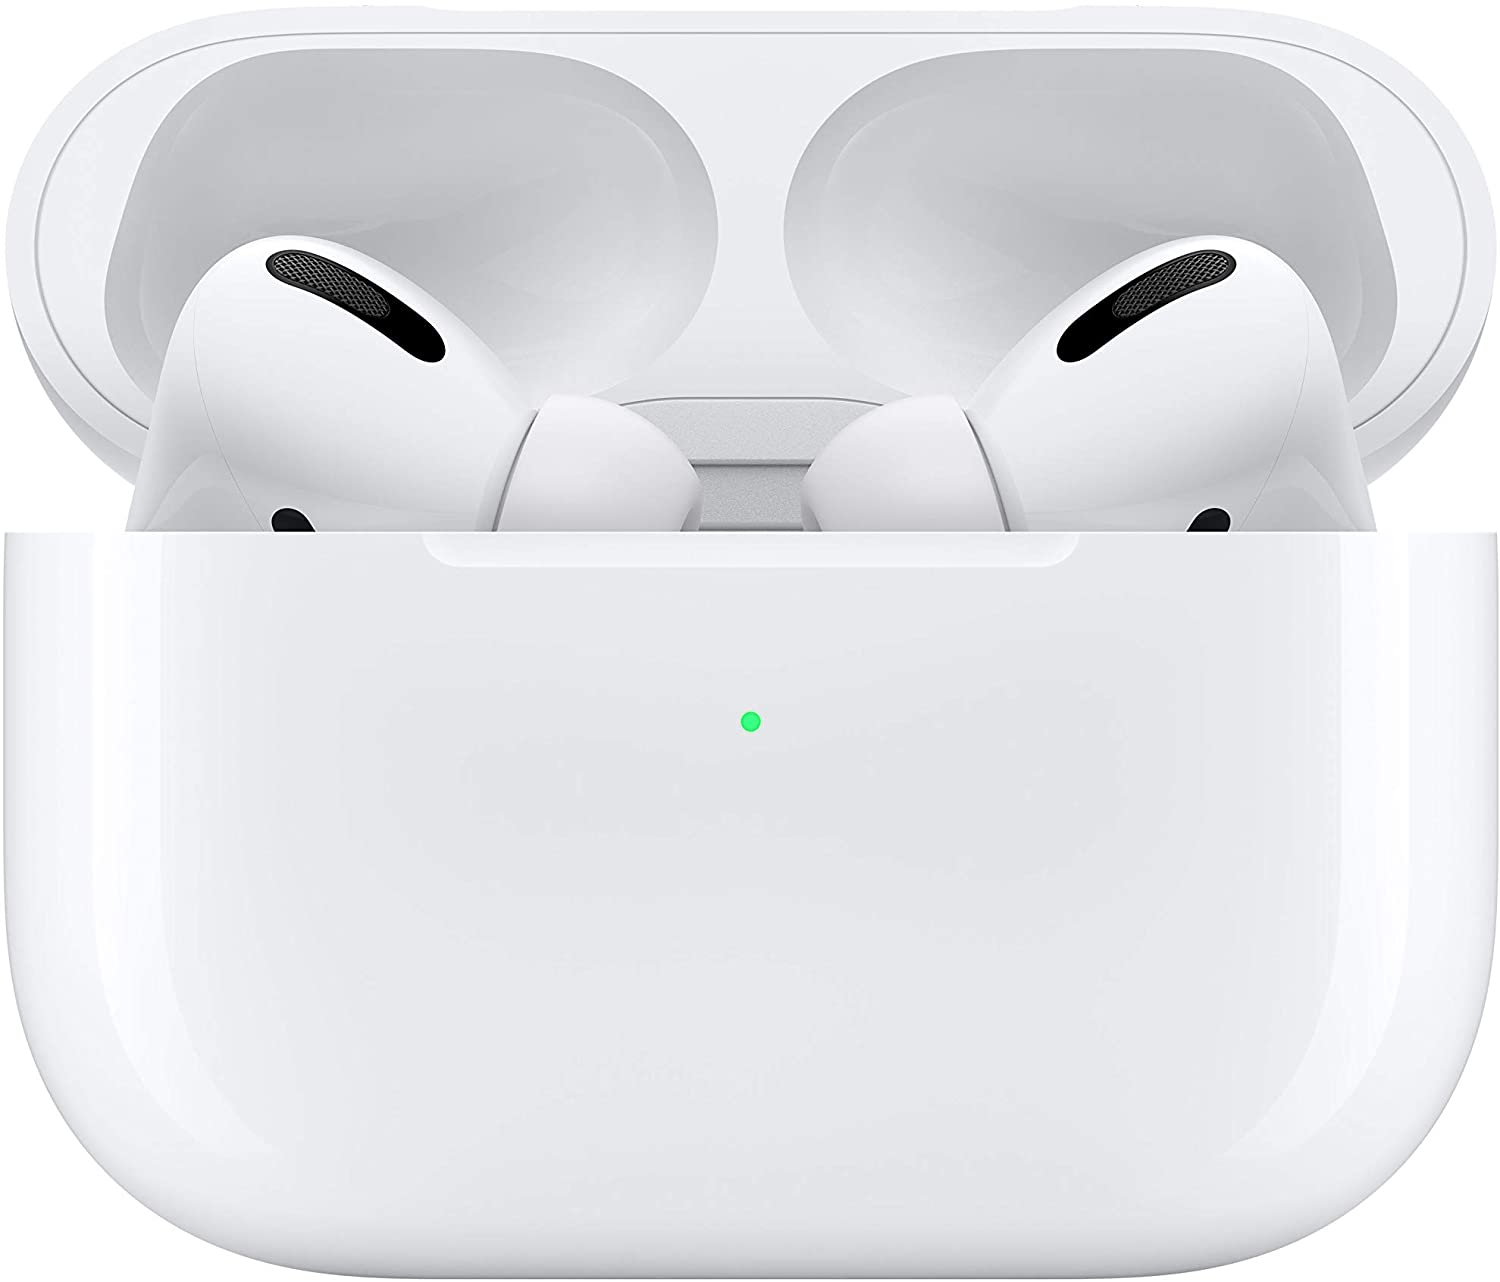 Apple AirPods Pro, $249.00 Image